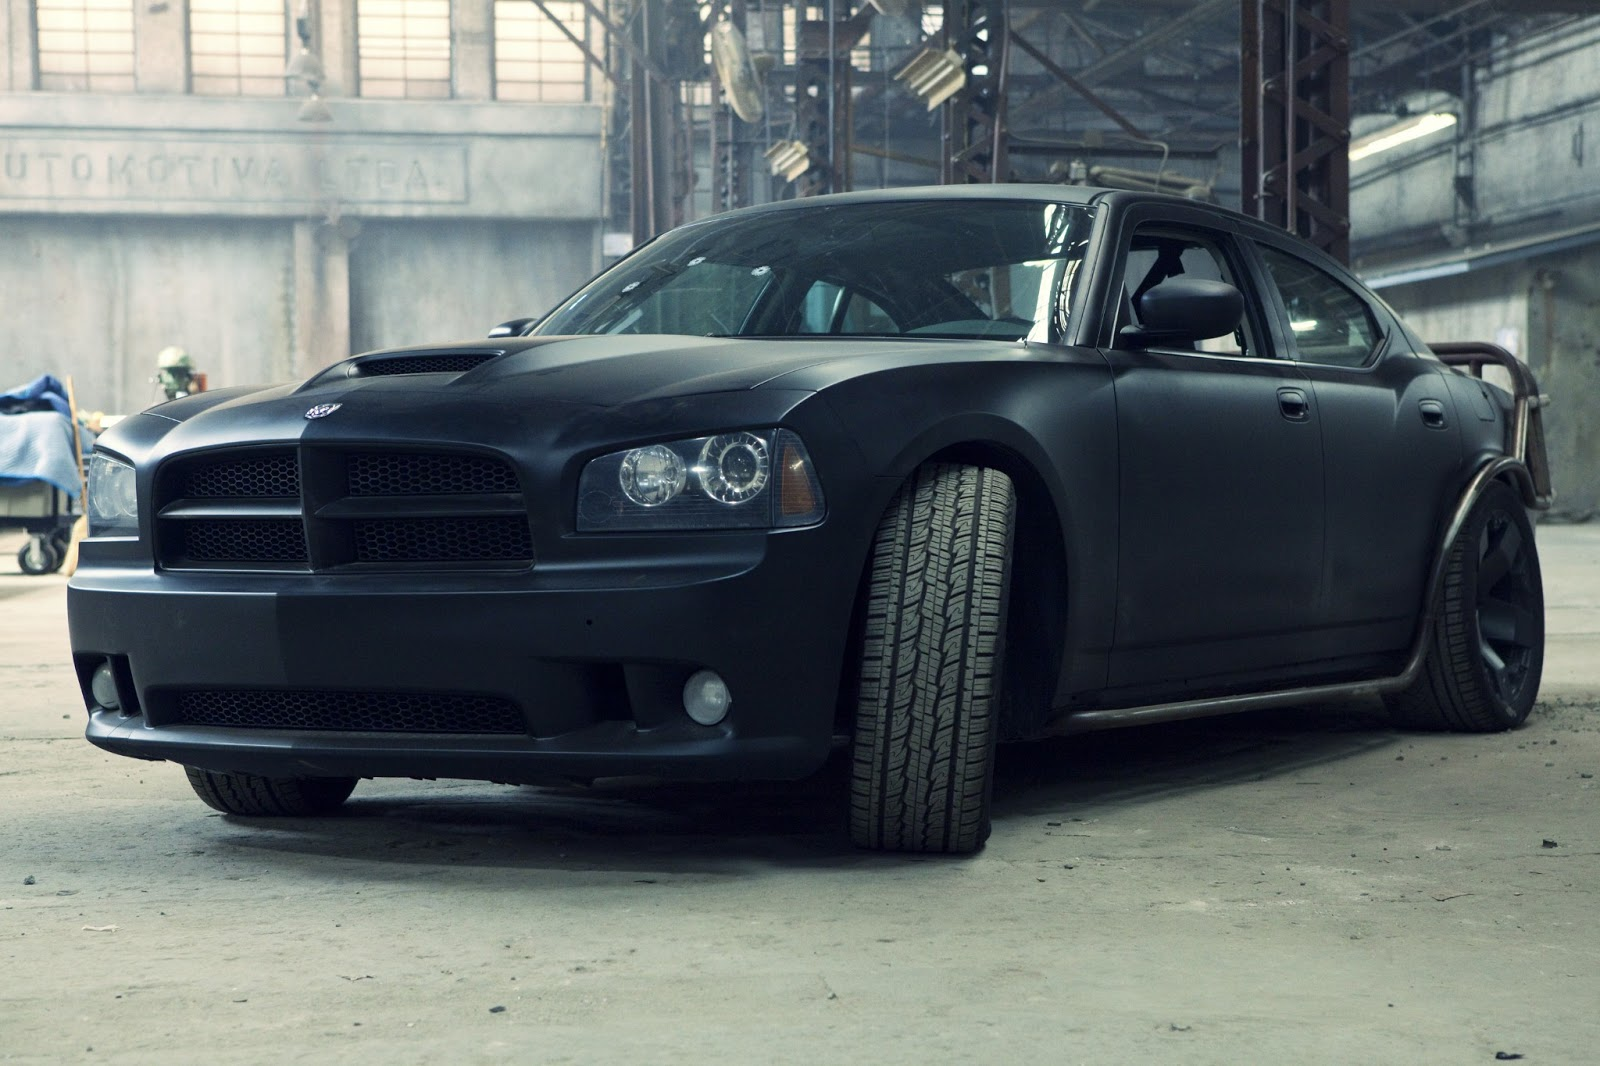 http://4.bp.blogspot.com/-J8sDD4N1hzc/UOxinSXuDHI/AAAAAAAAAVg/O3boRkcqSMs/s1600/Dodge+Ram+2013+HD+Wallpapers.jpg